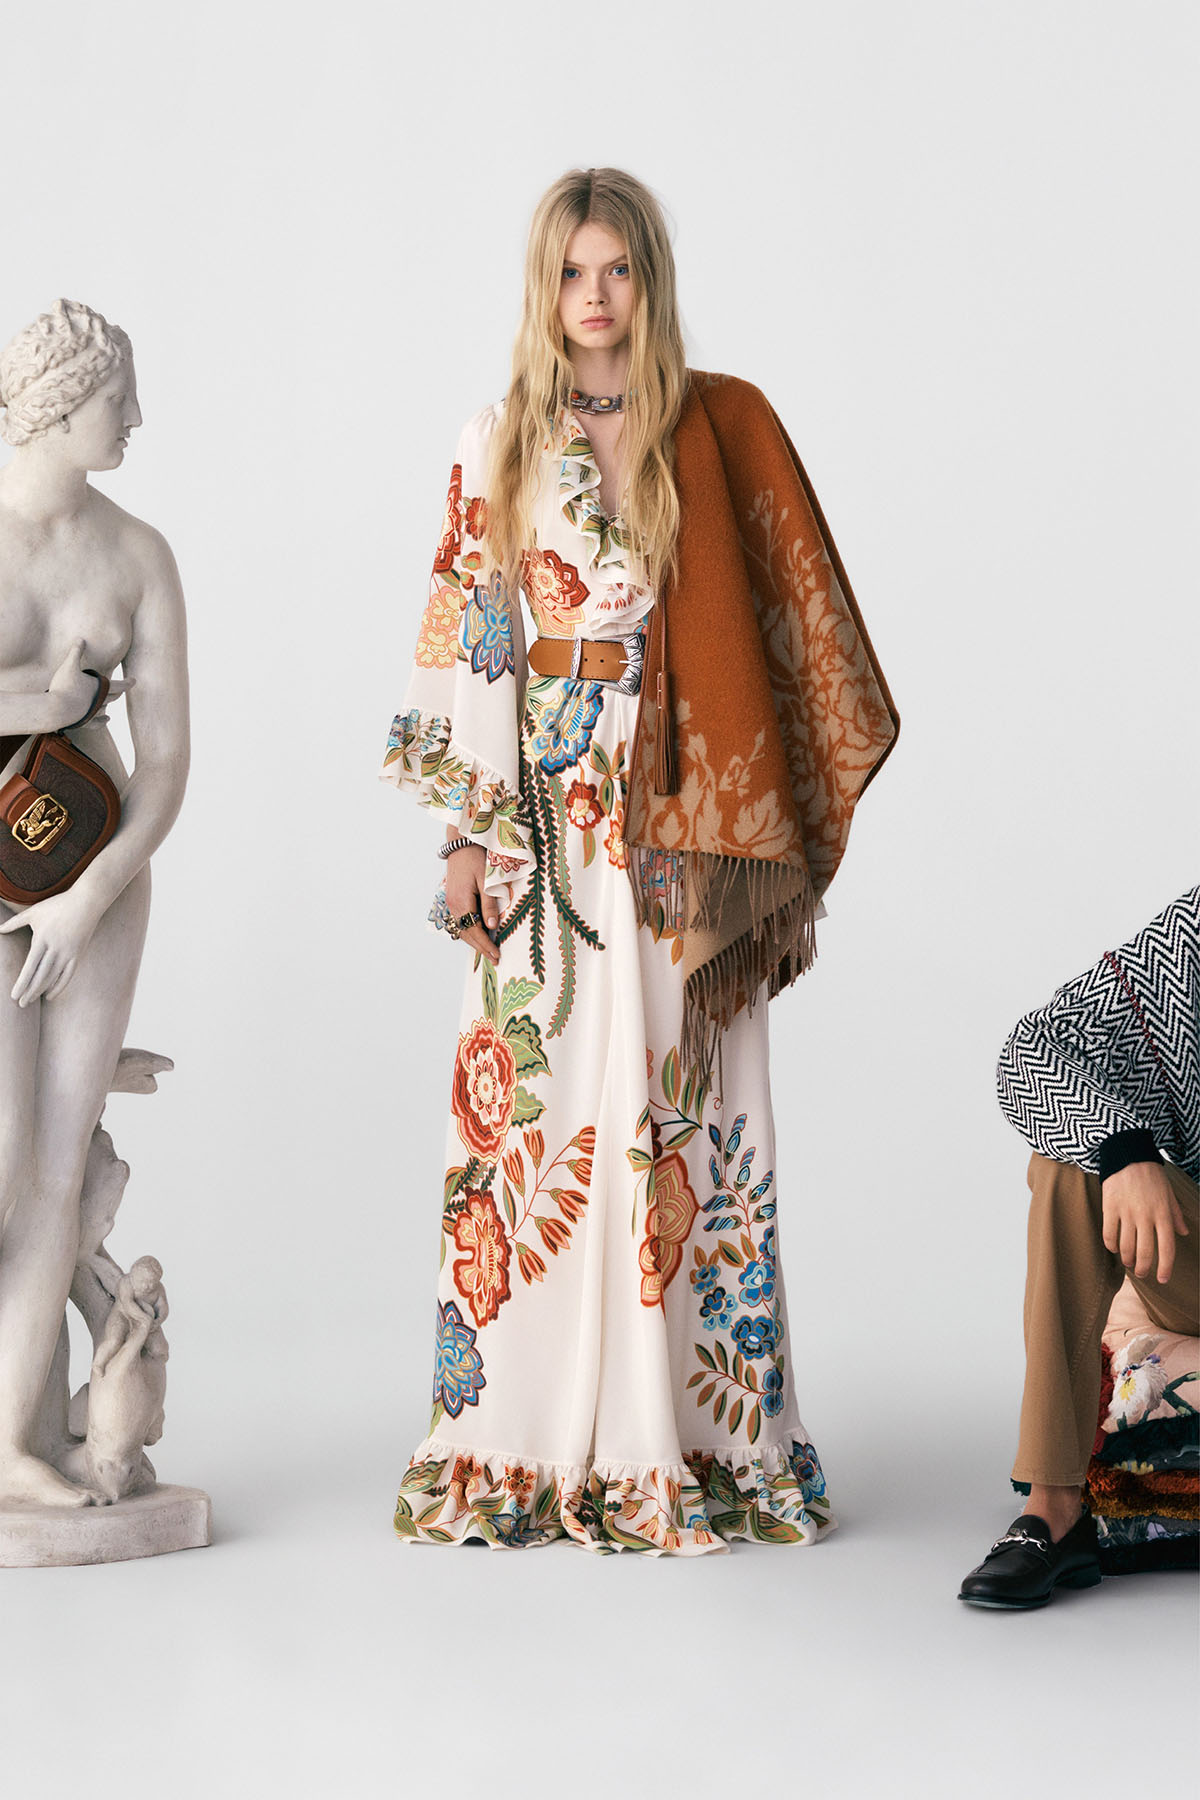 Etro Pre-Fall 2021 Fashion Show Photos